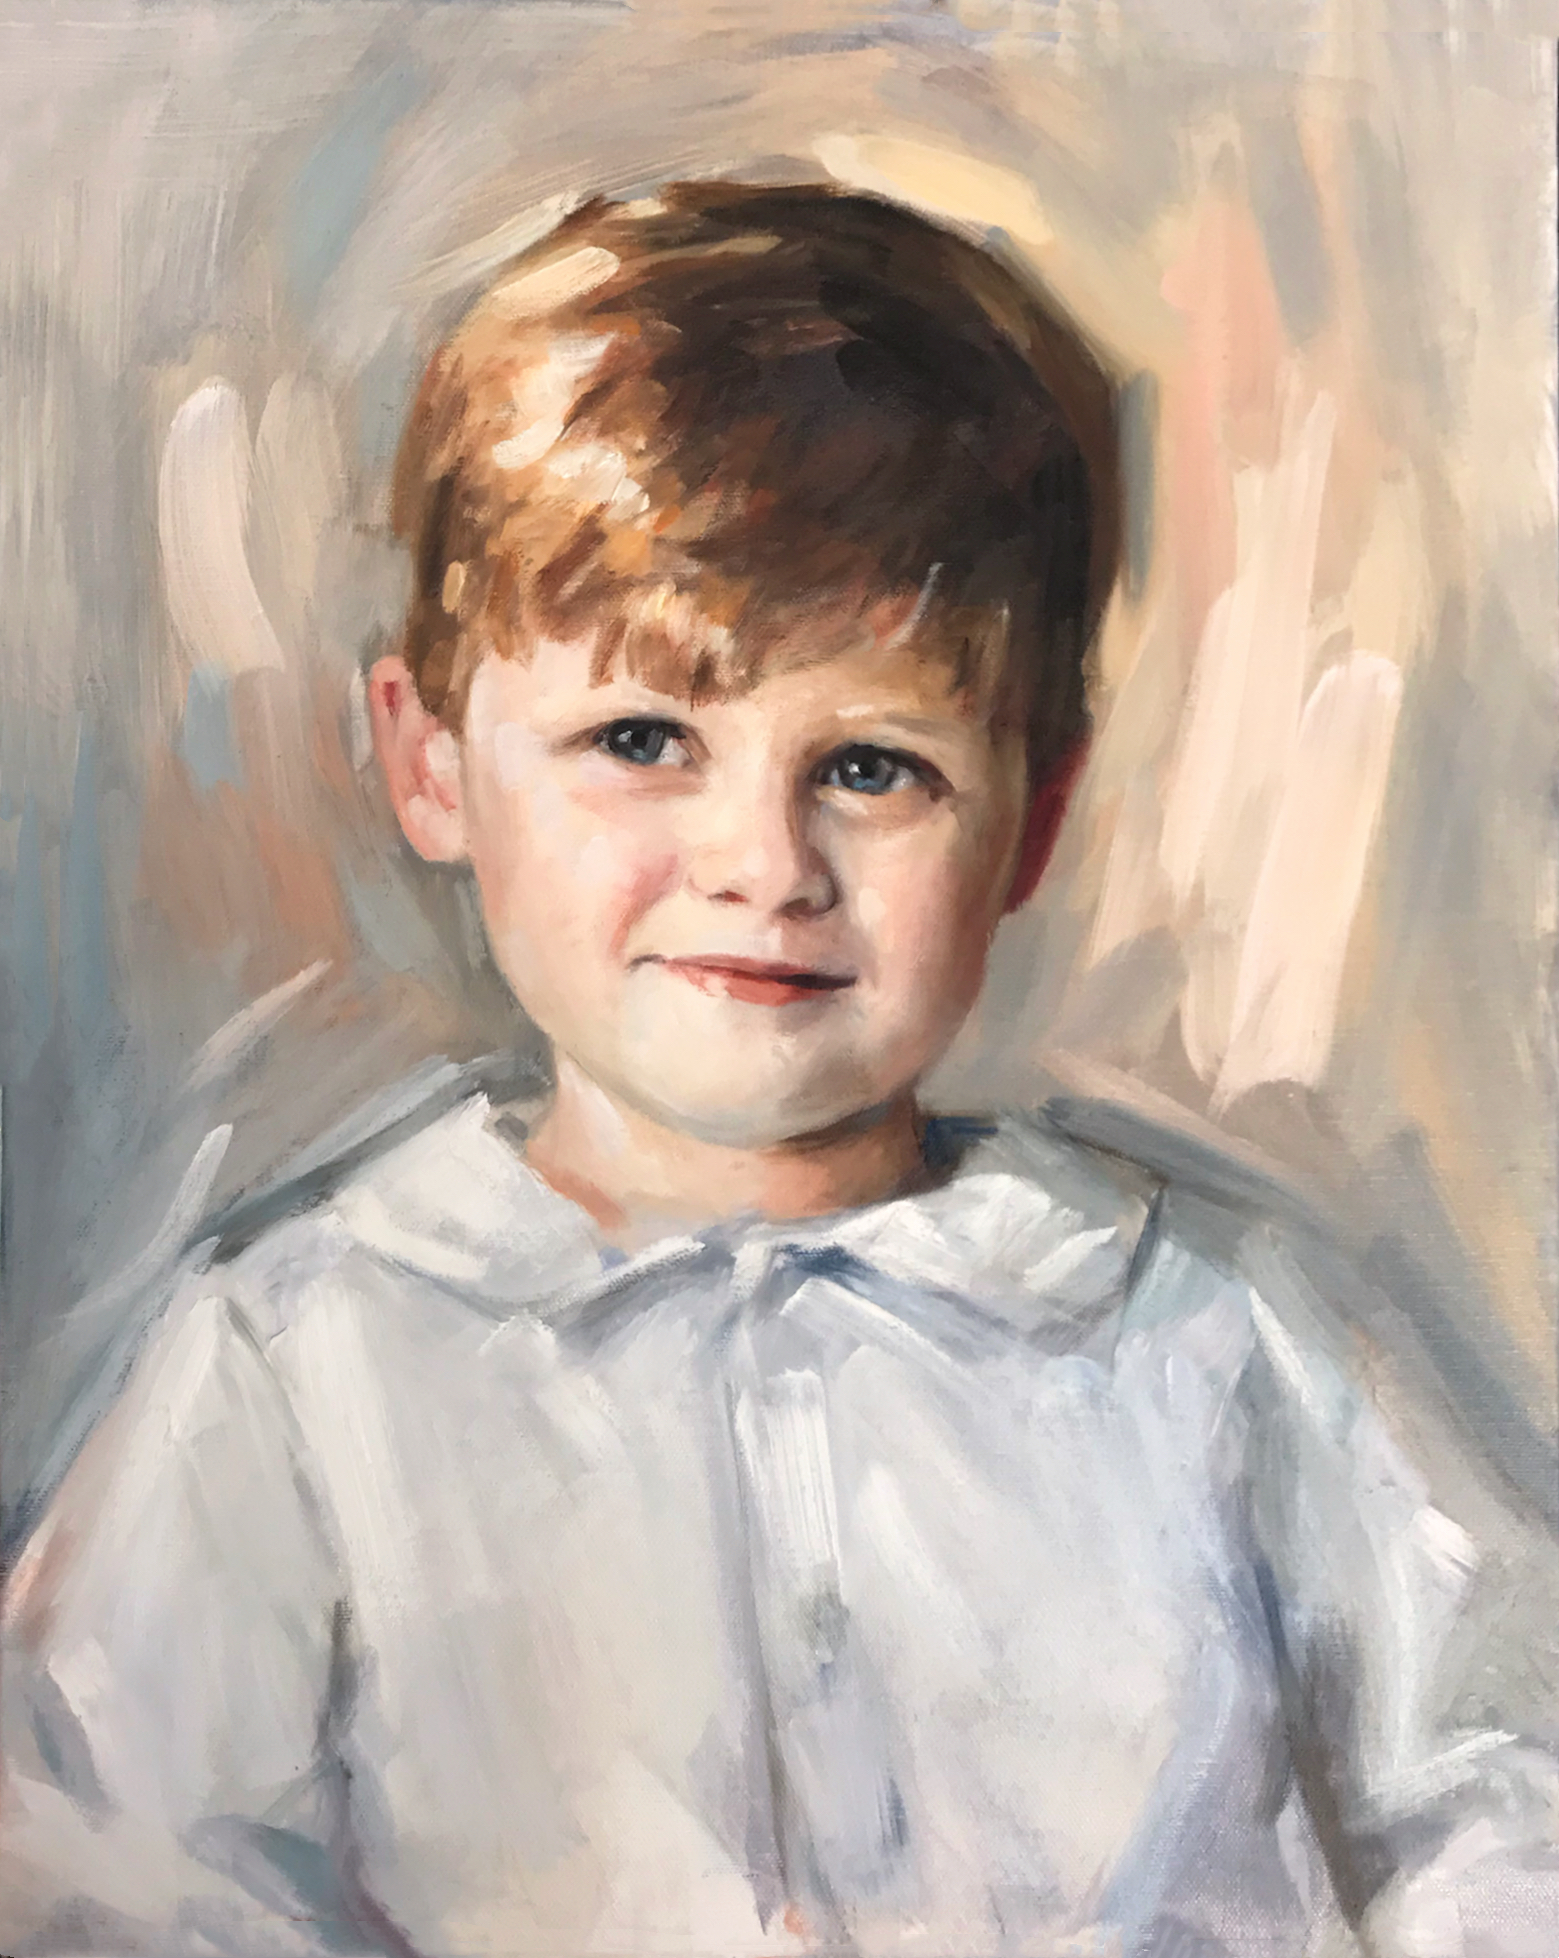 Painterly Head & Shoulders Portrait of a Young Boy